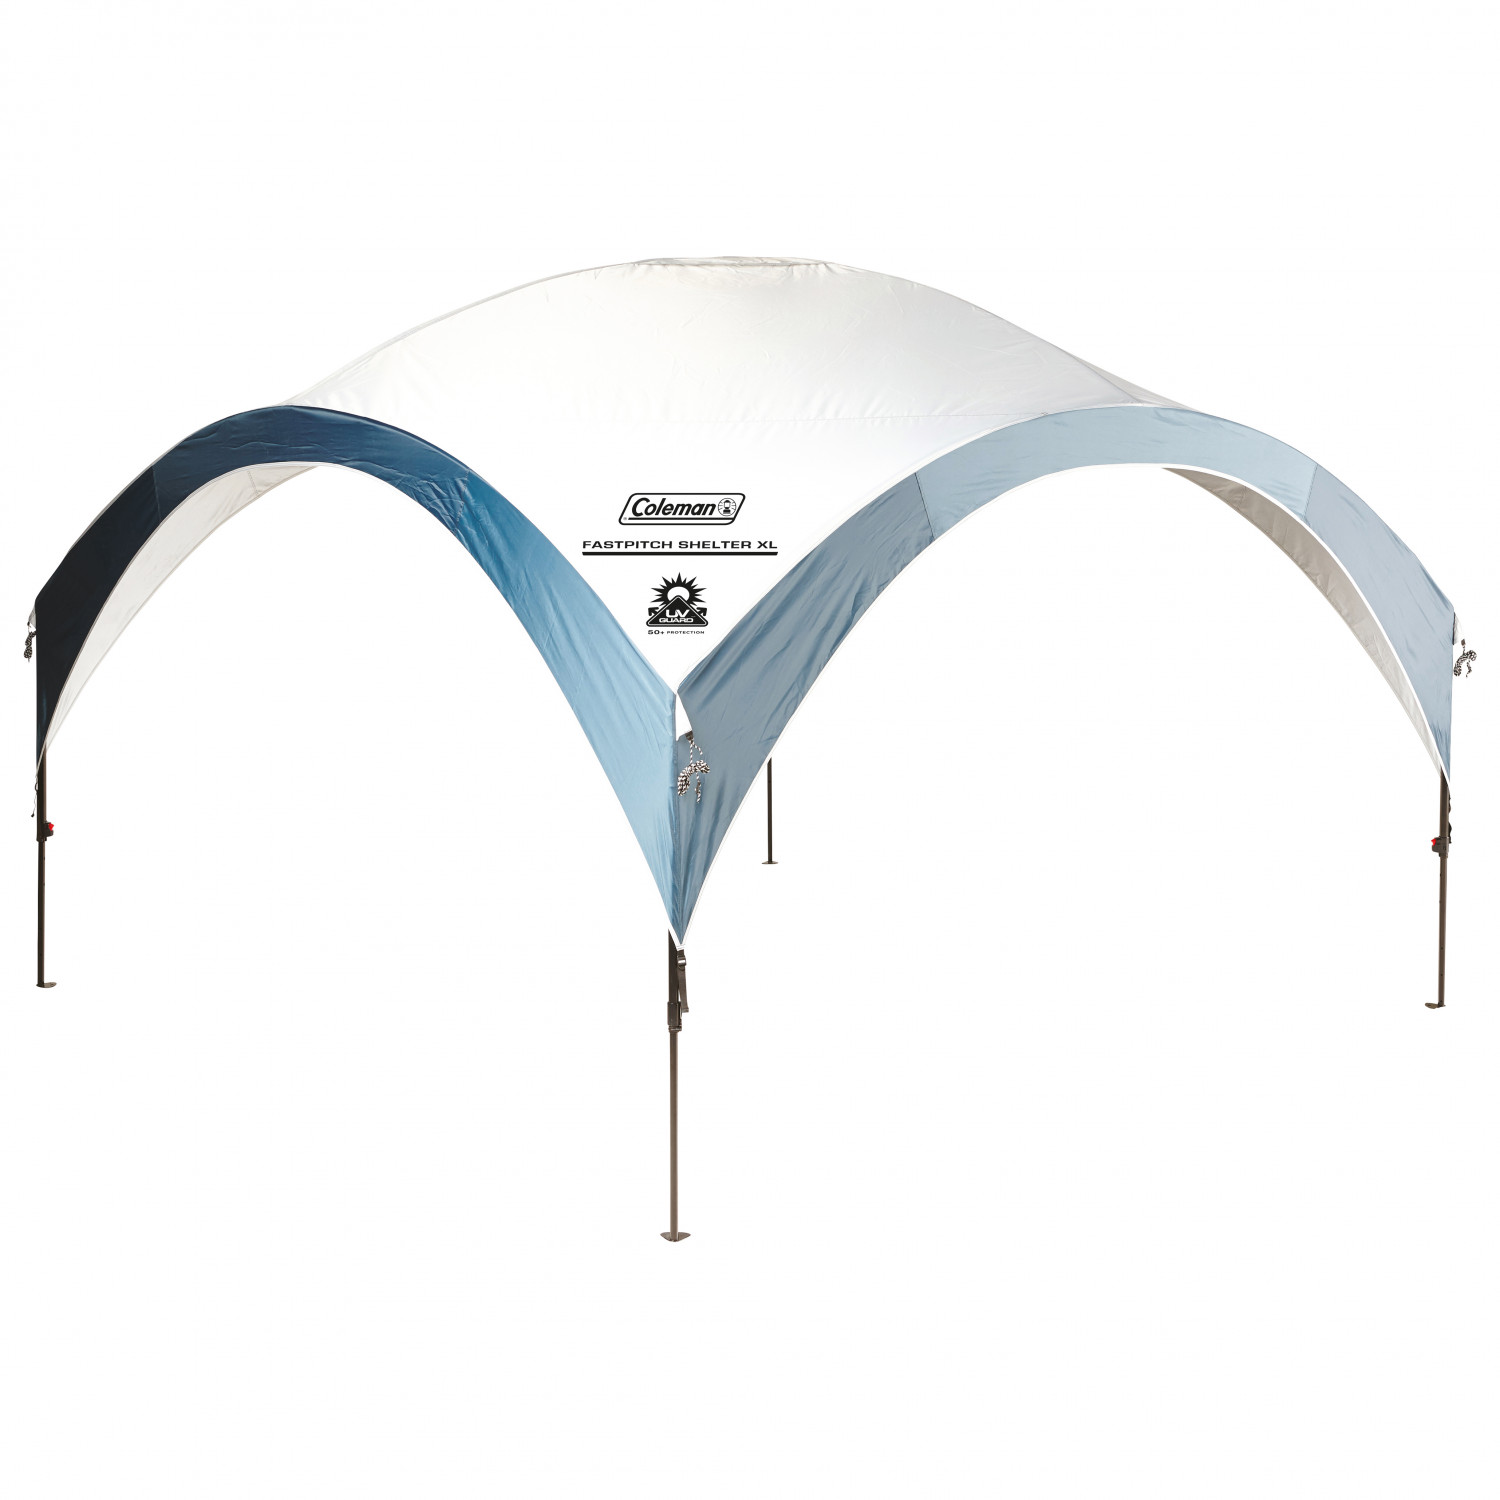 Coleman Fast Pitch Shelter - Motorhome Awning | Free UK ...